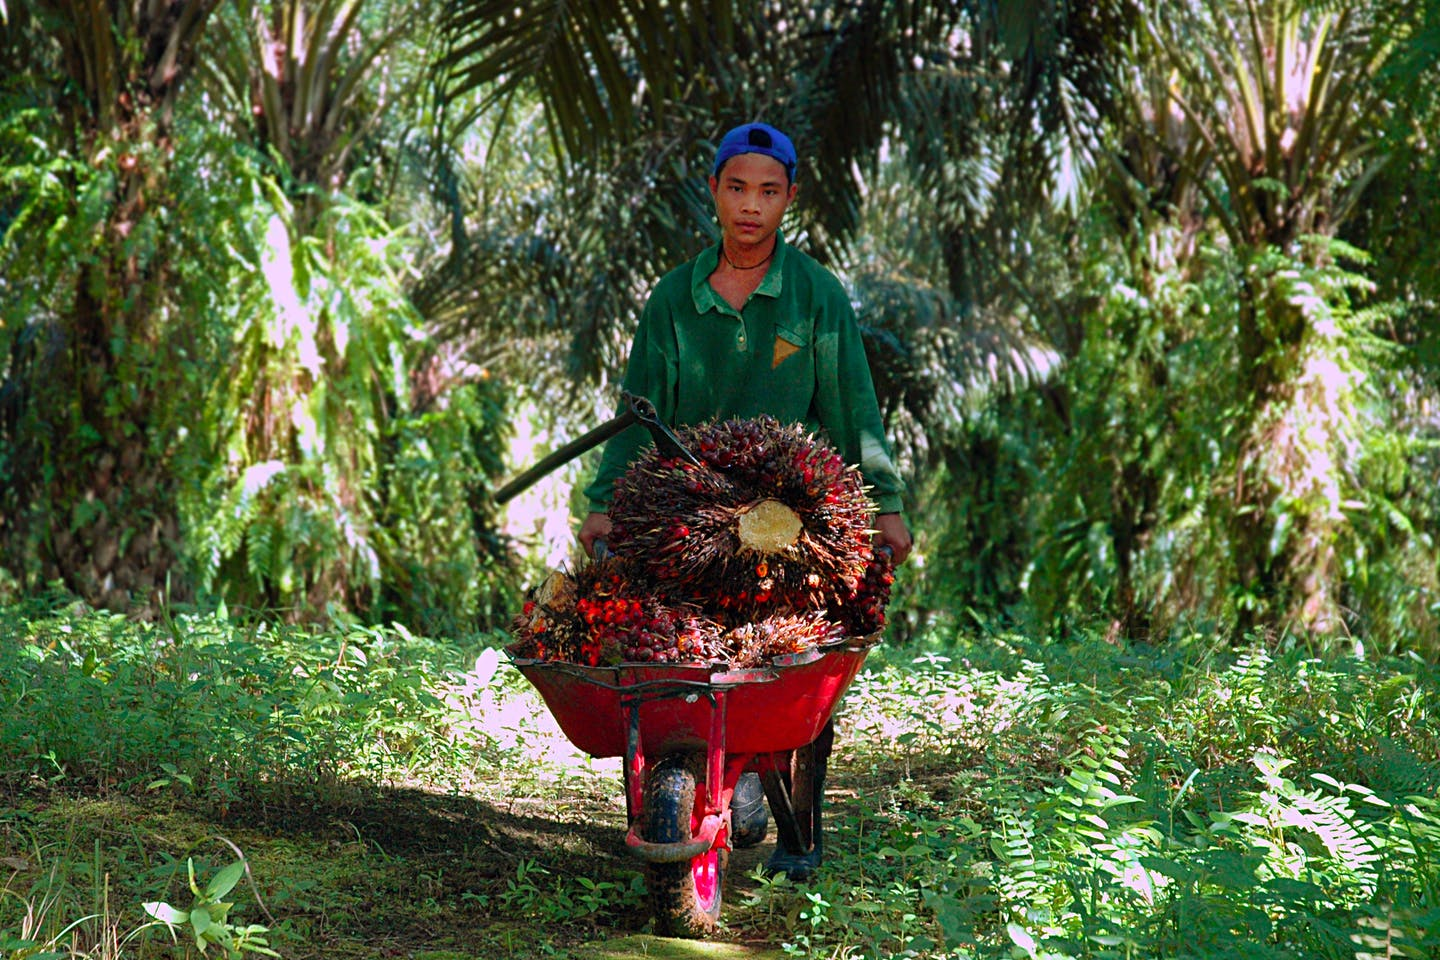 Child labour on palm oil plantation